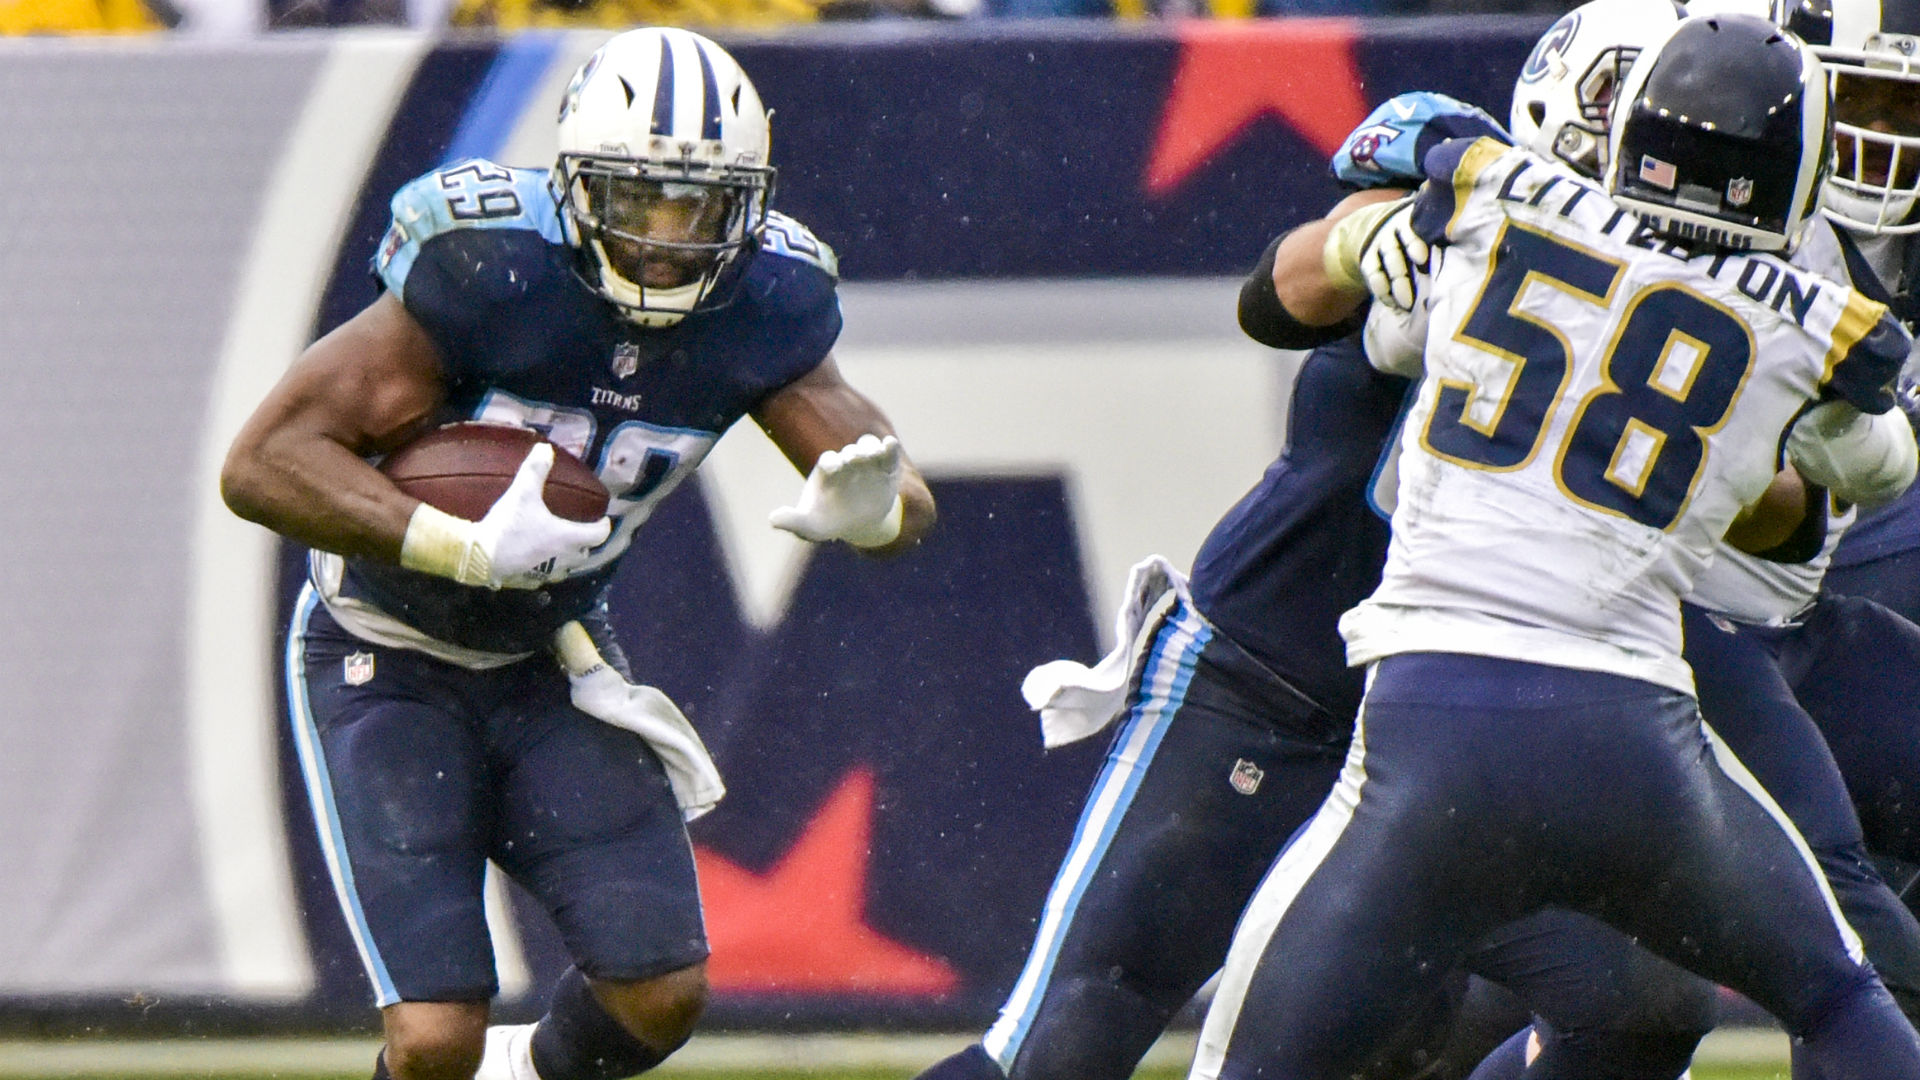 DeMarco Murray leaves Titans game vs. Rams with right knee injury